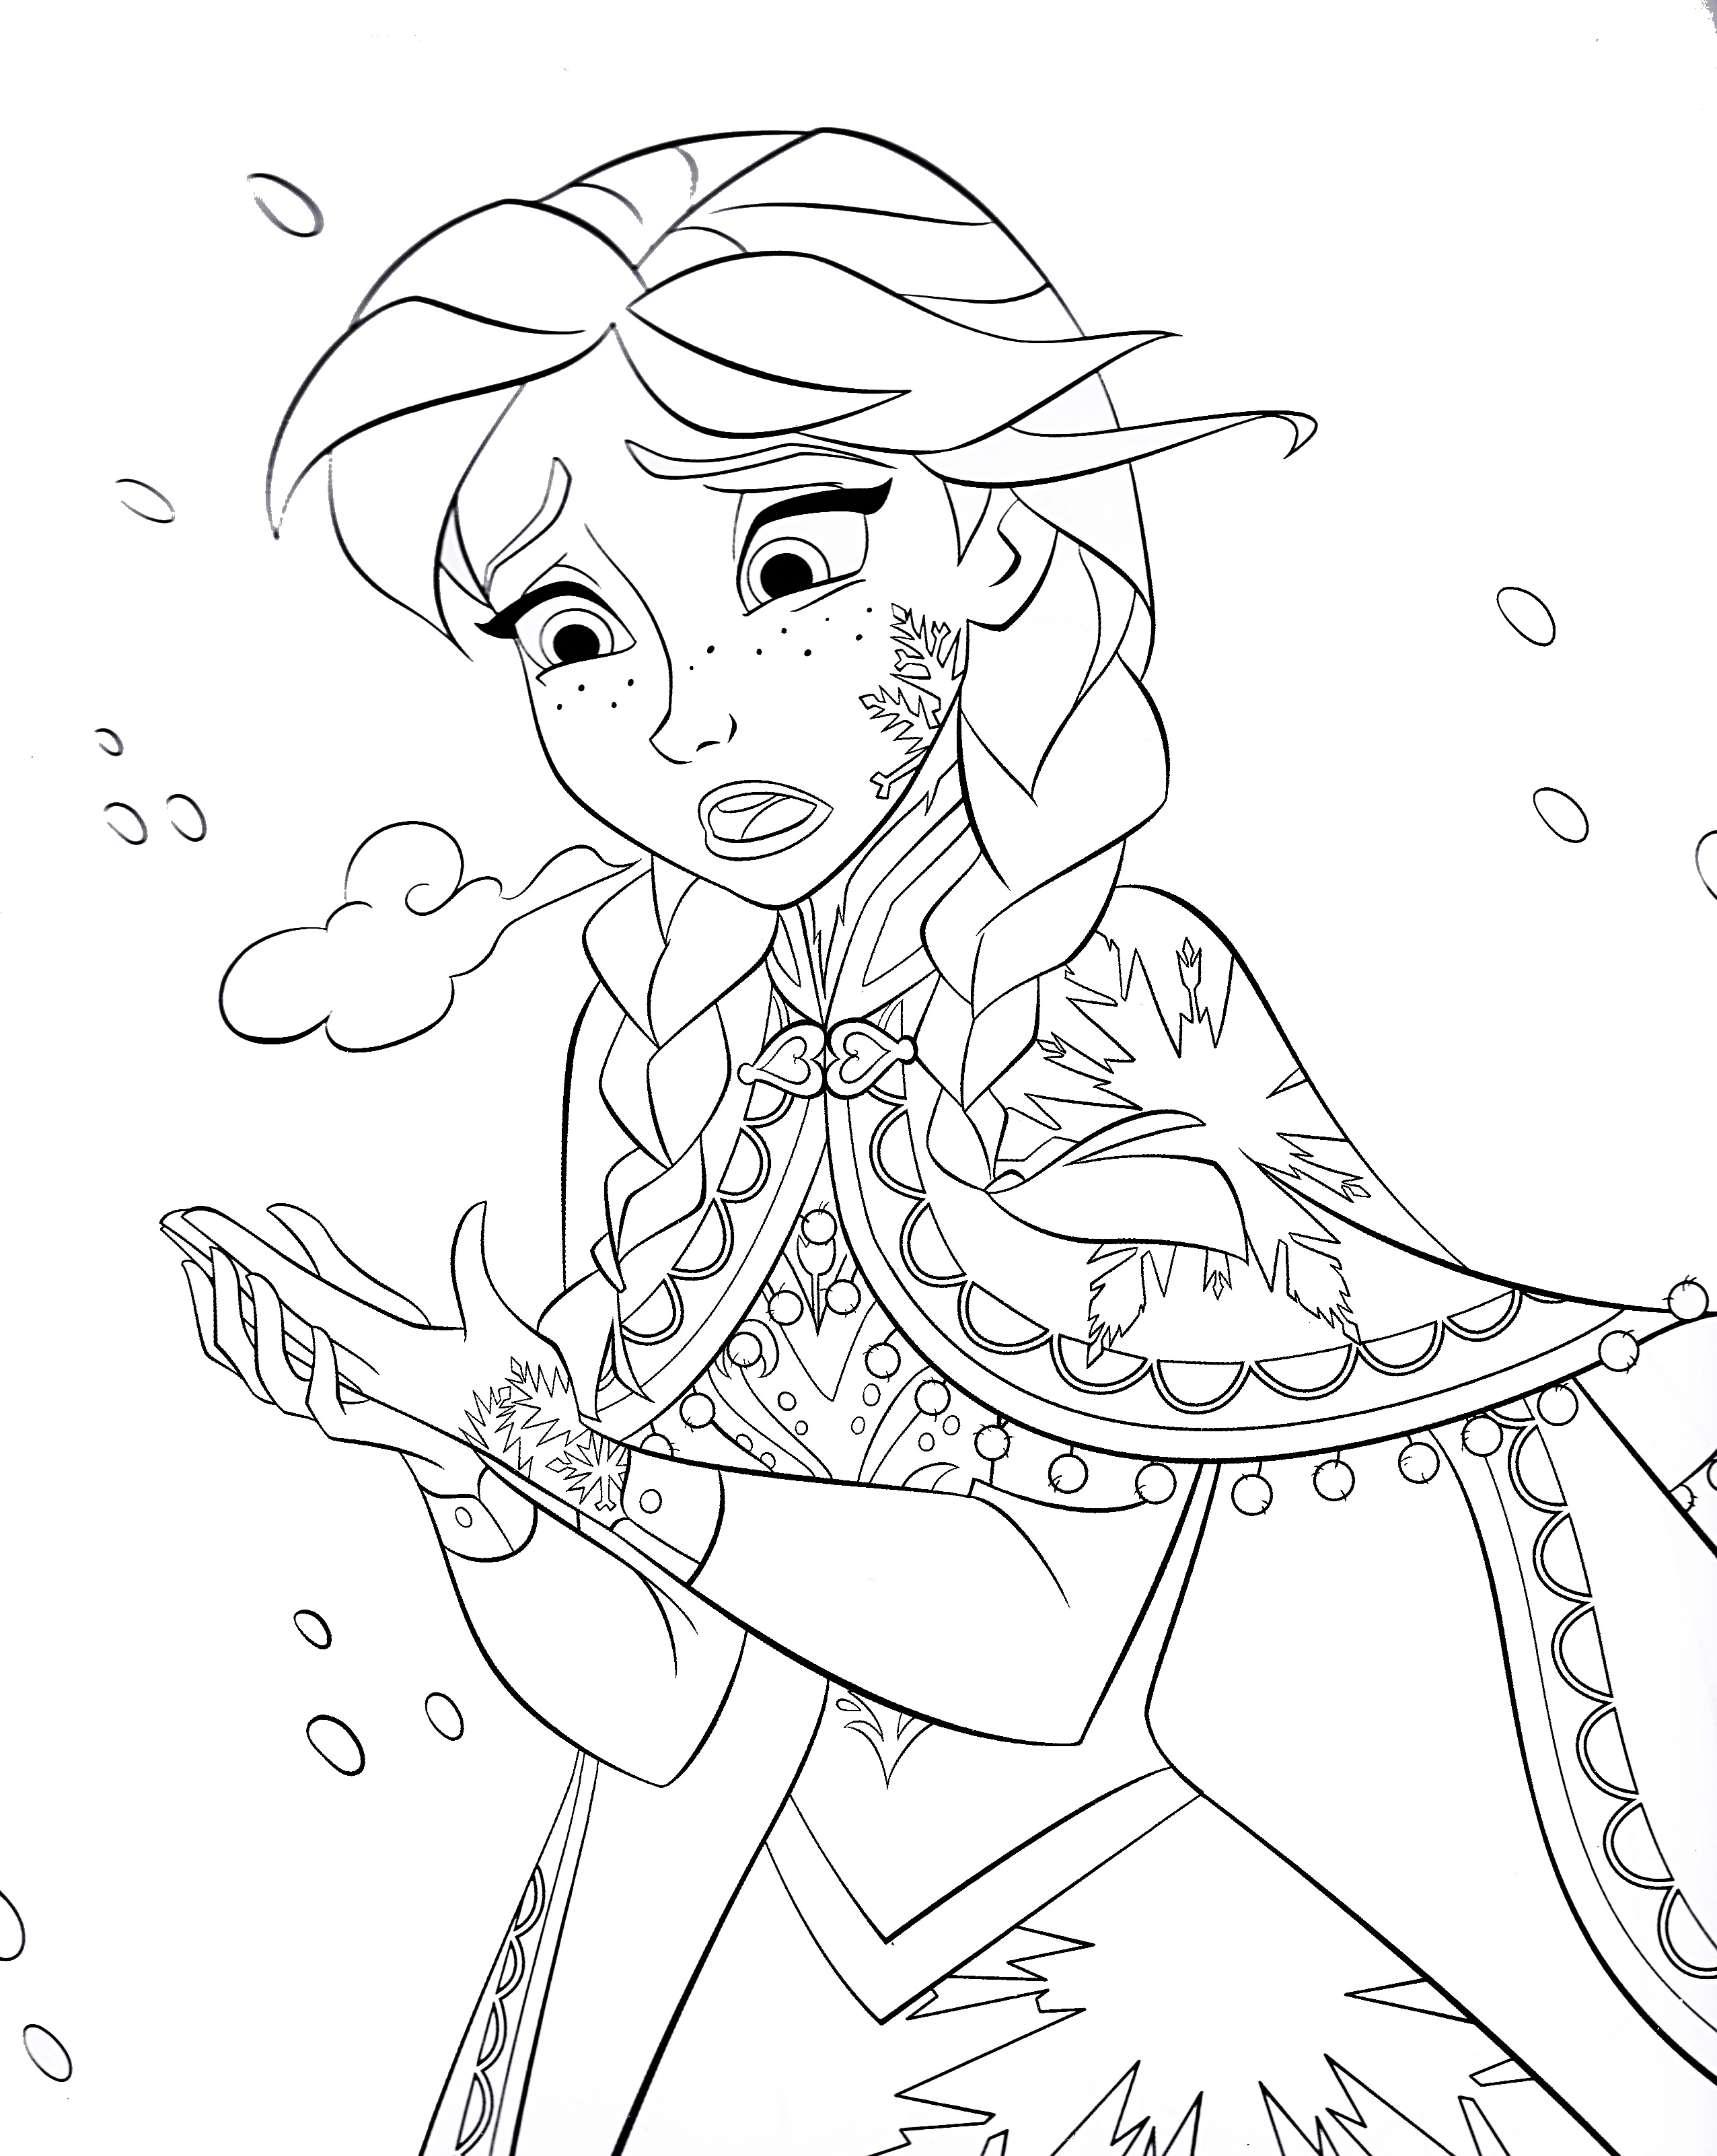 Disney s Frozen Colouring Pages Cute Kawaii Resources